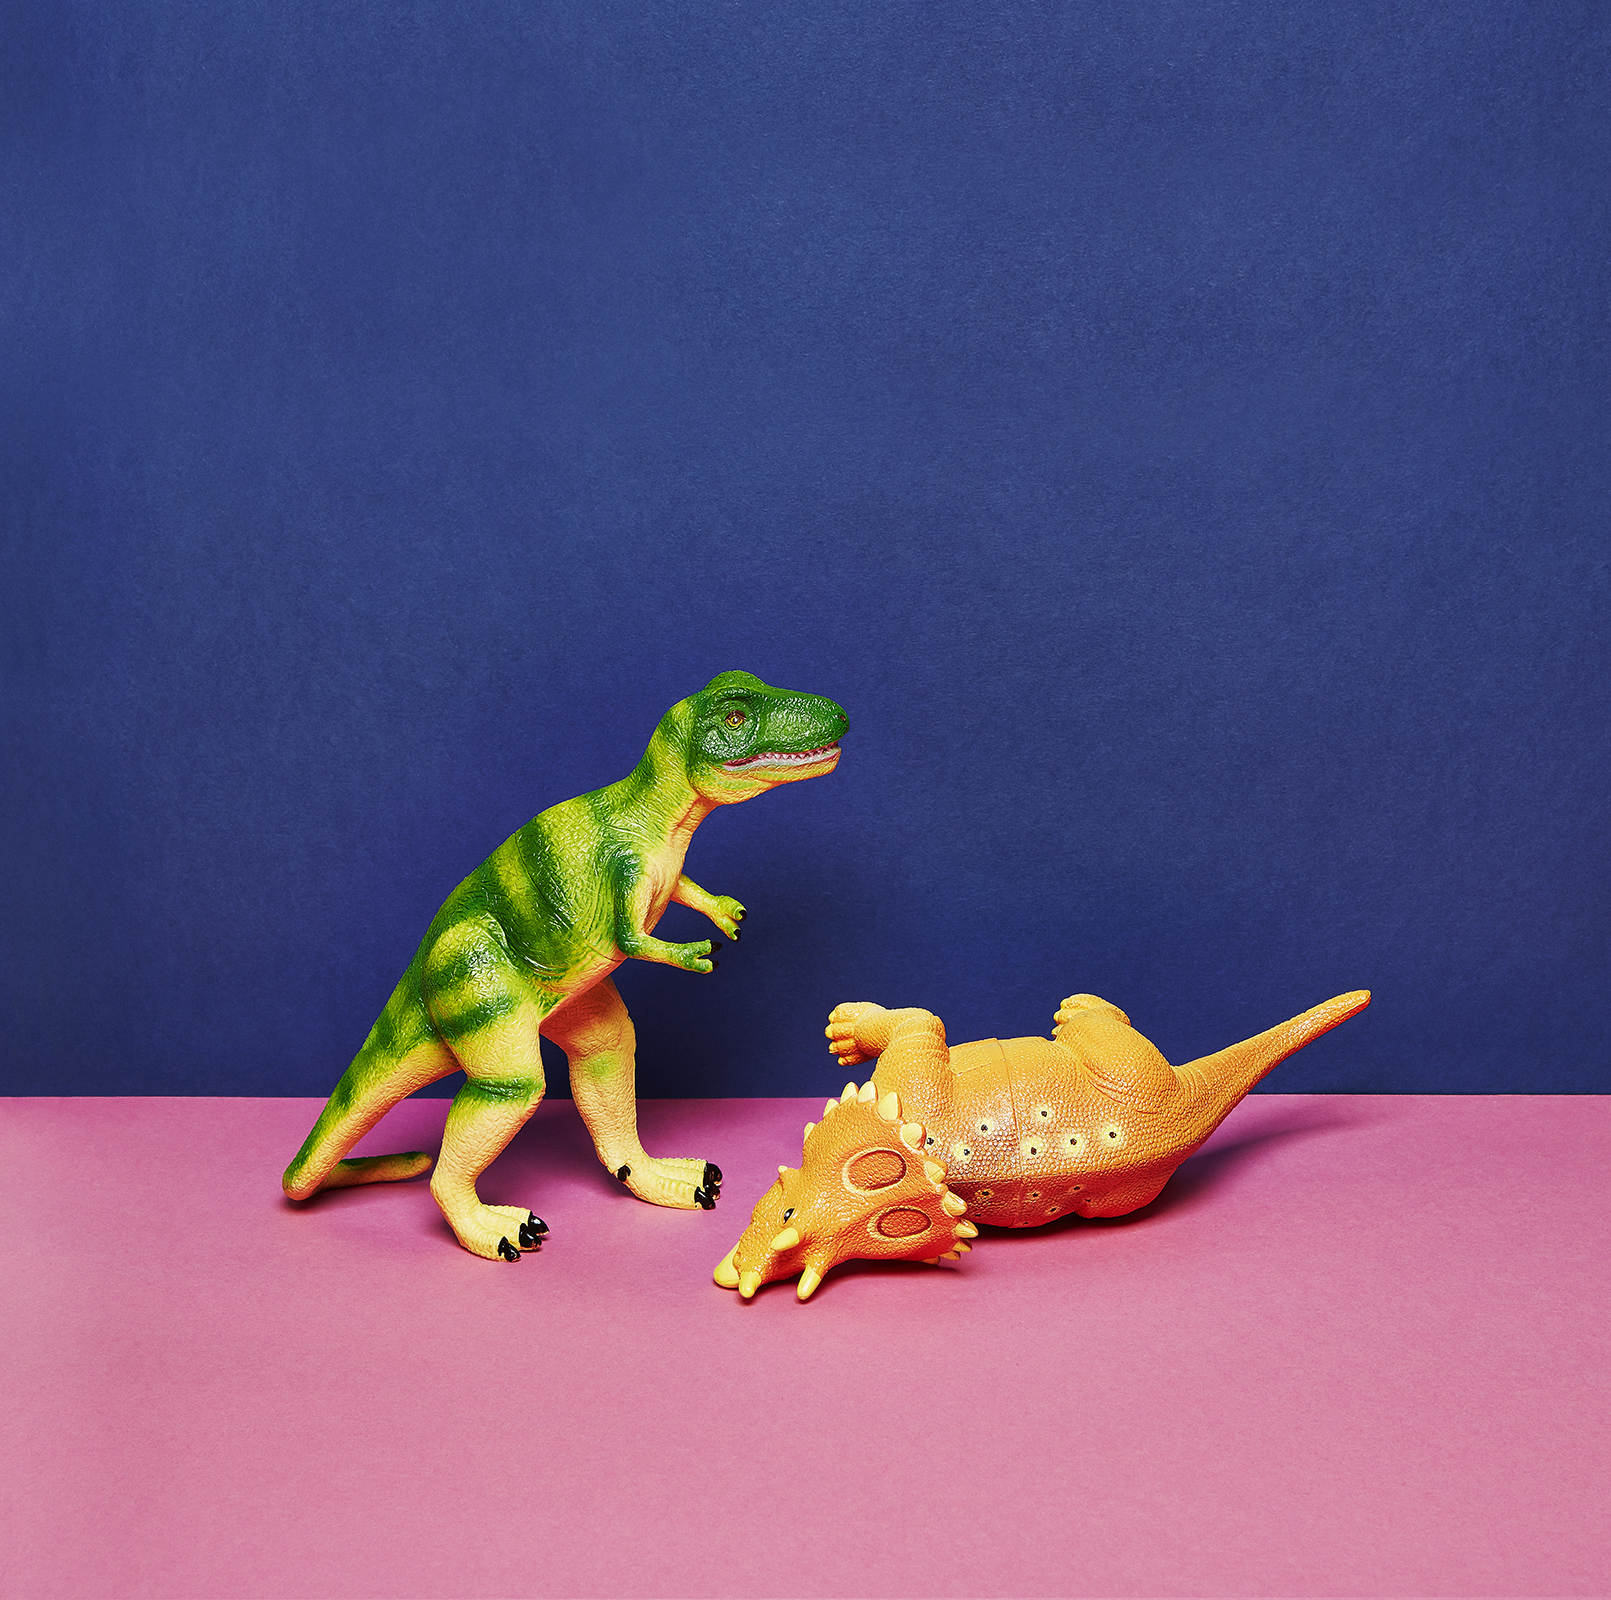 Fighting toy dinosaurs